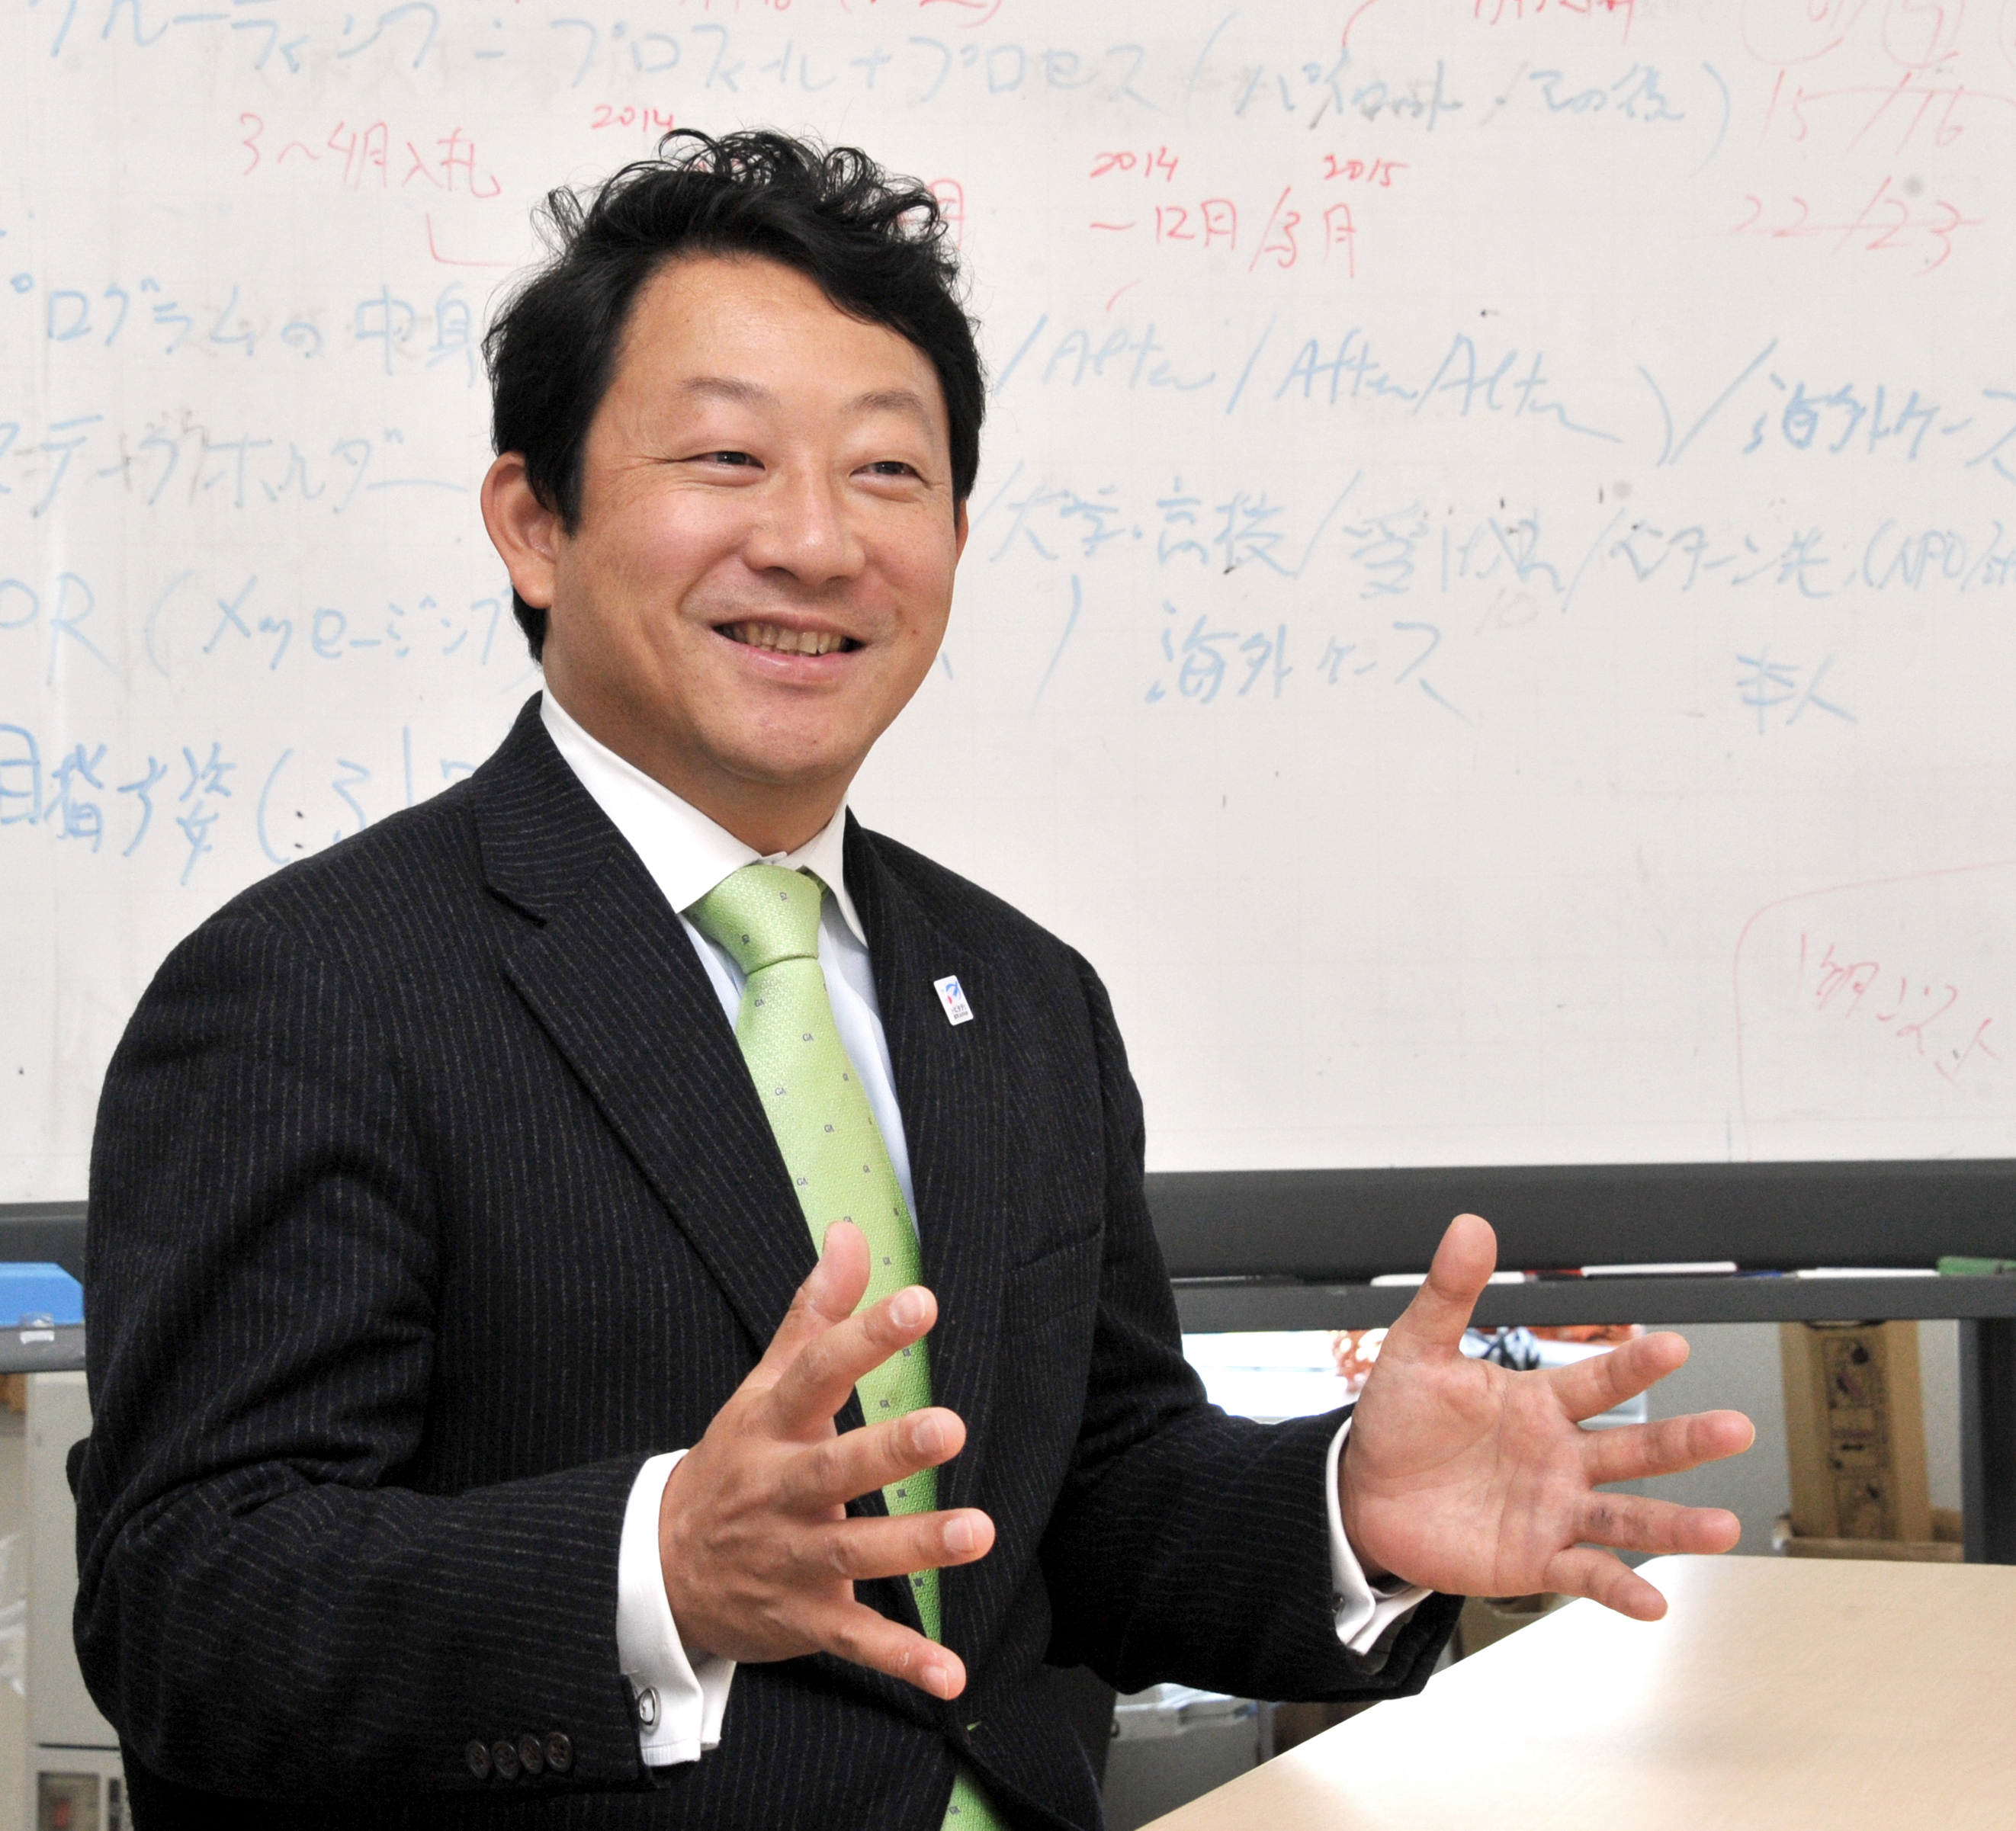 Meeting needs and changing perceptions: Chikara Funabashi, in charge of promoting study abroad programs at the education ministry, is interviewed on Jan. 17 at the ministry in Tokyo. | YOSHIAKI MIURA